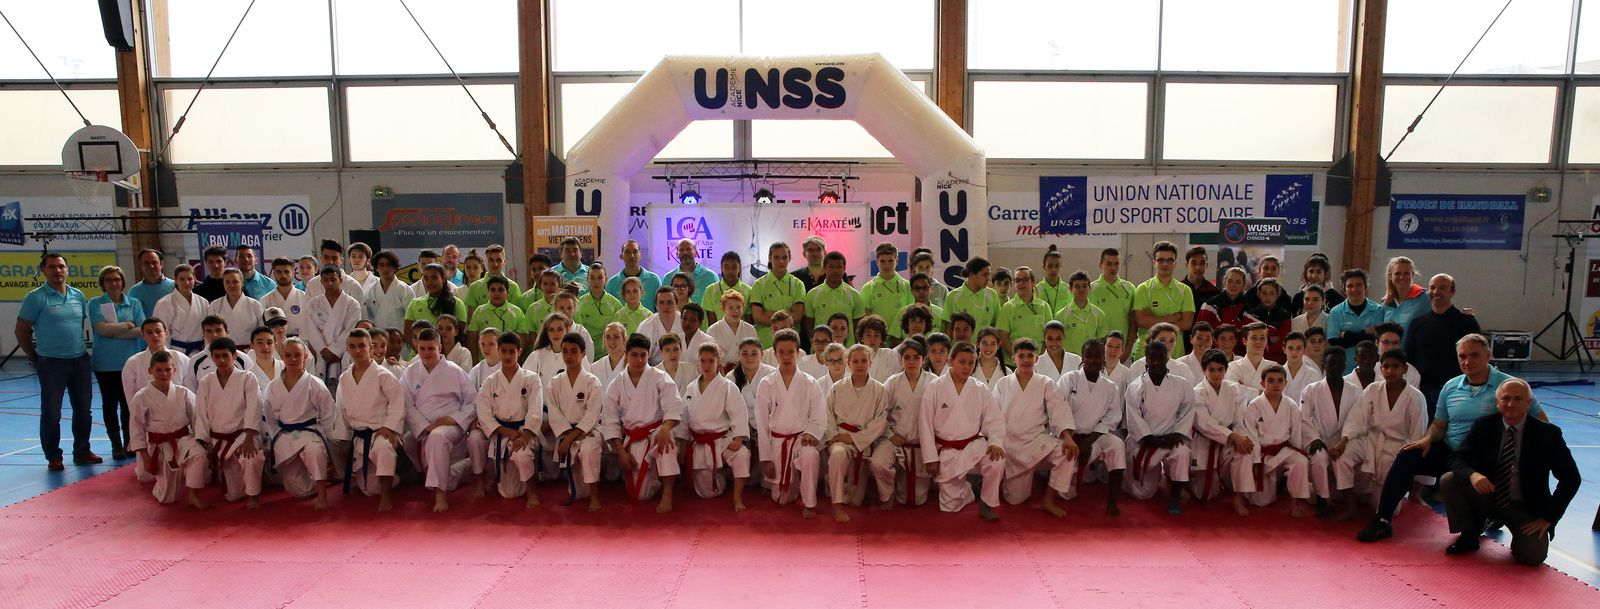 CHAMPIONNATS FRANCE UNSS KARATE